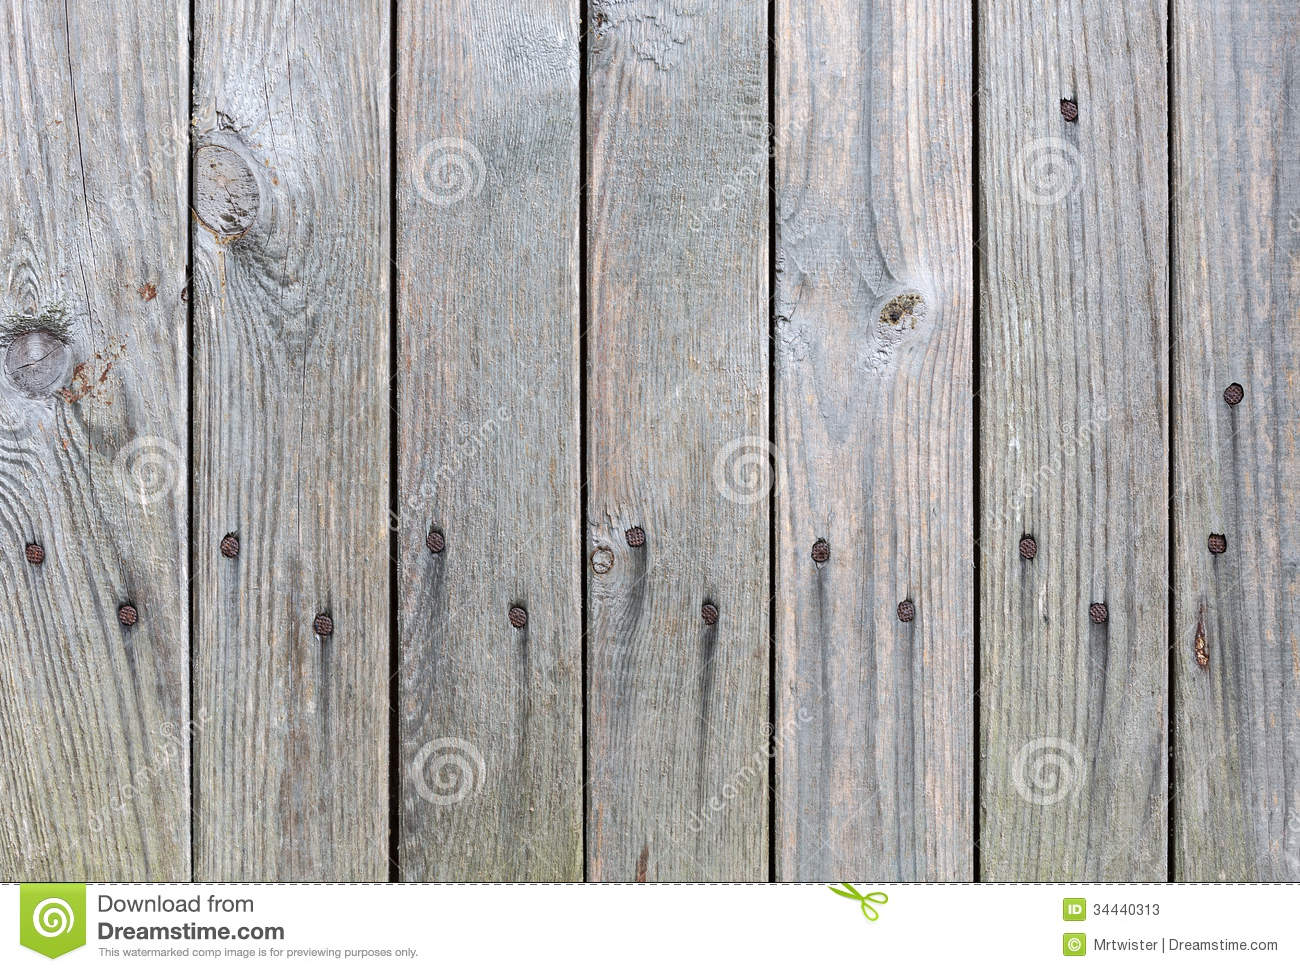 Wood Fence Texture : Wood Fence Texture Stock Photos - Image: 34440313